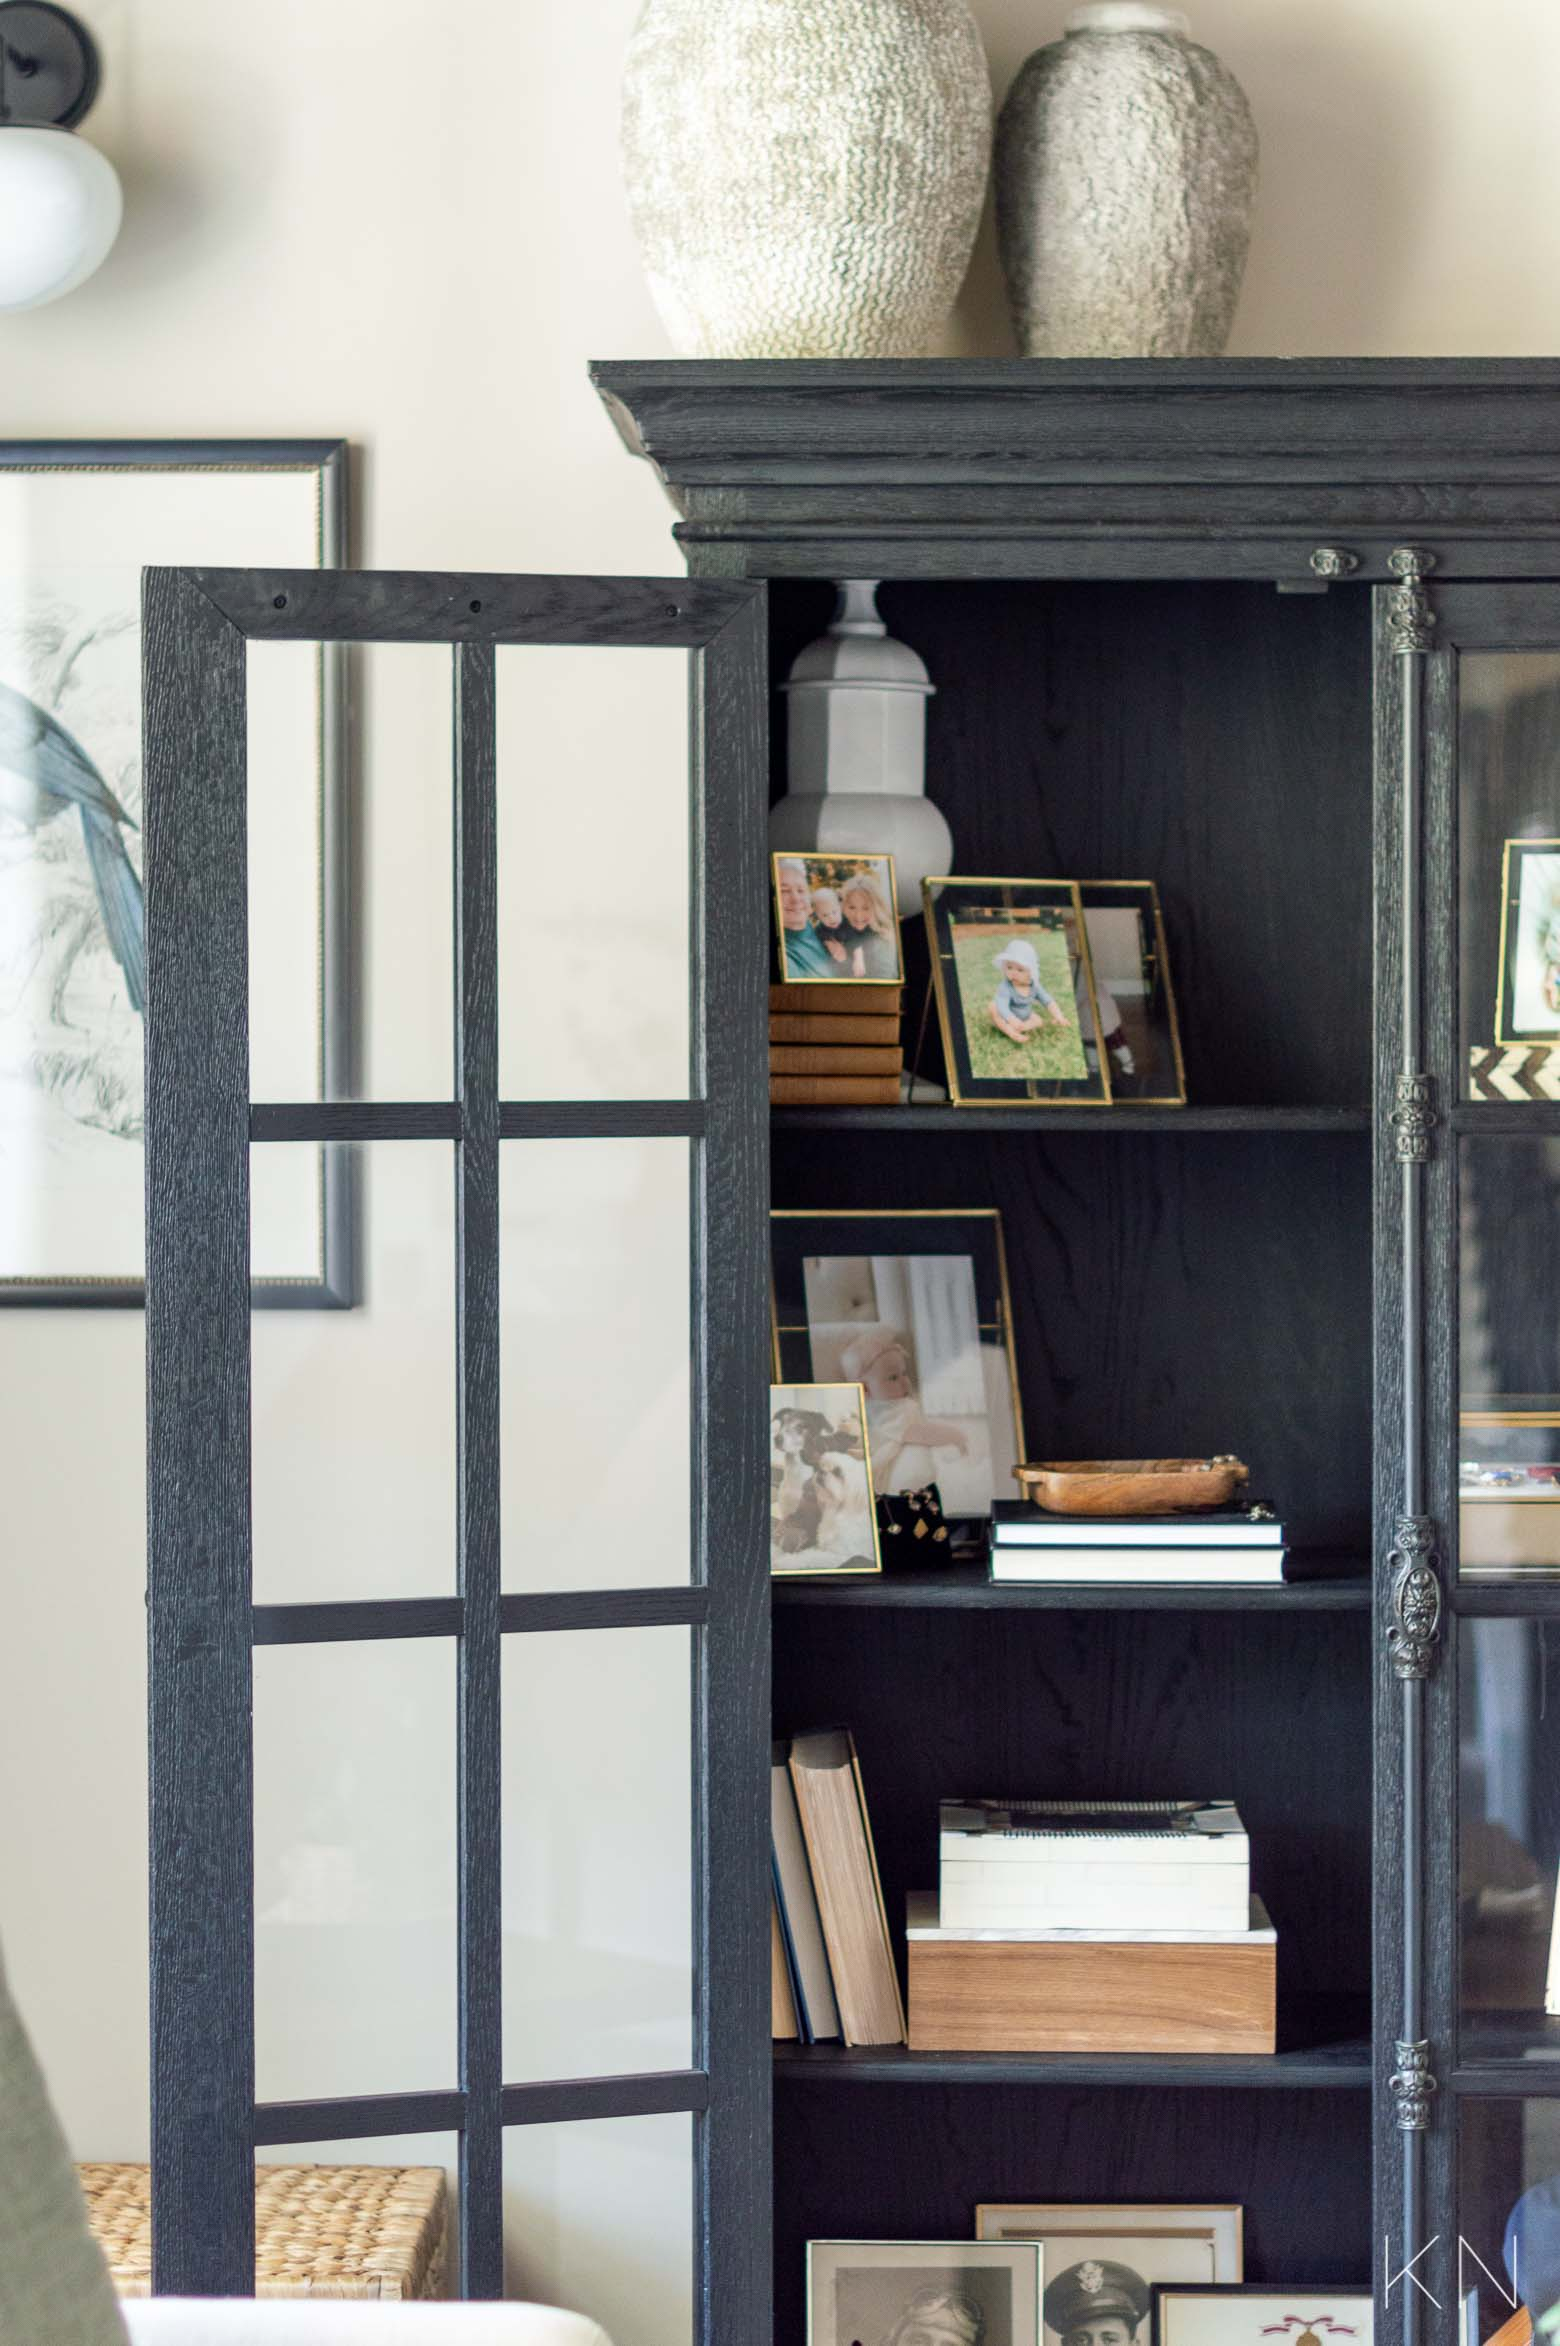 Styling and Decorating the Inside Shelves of a Living Room Cabinet